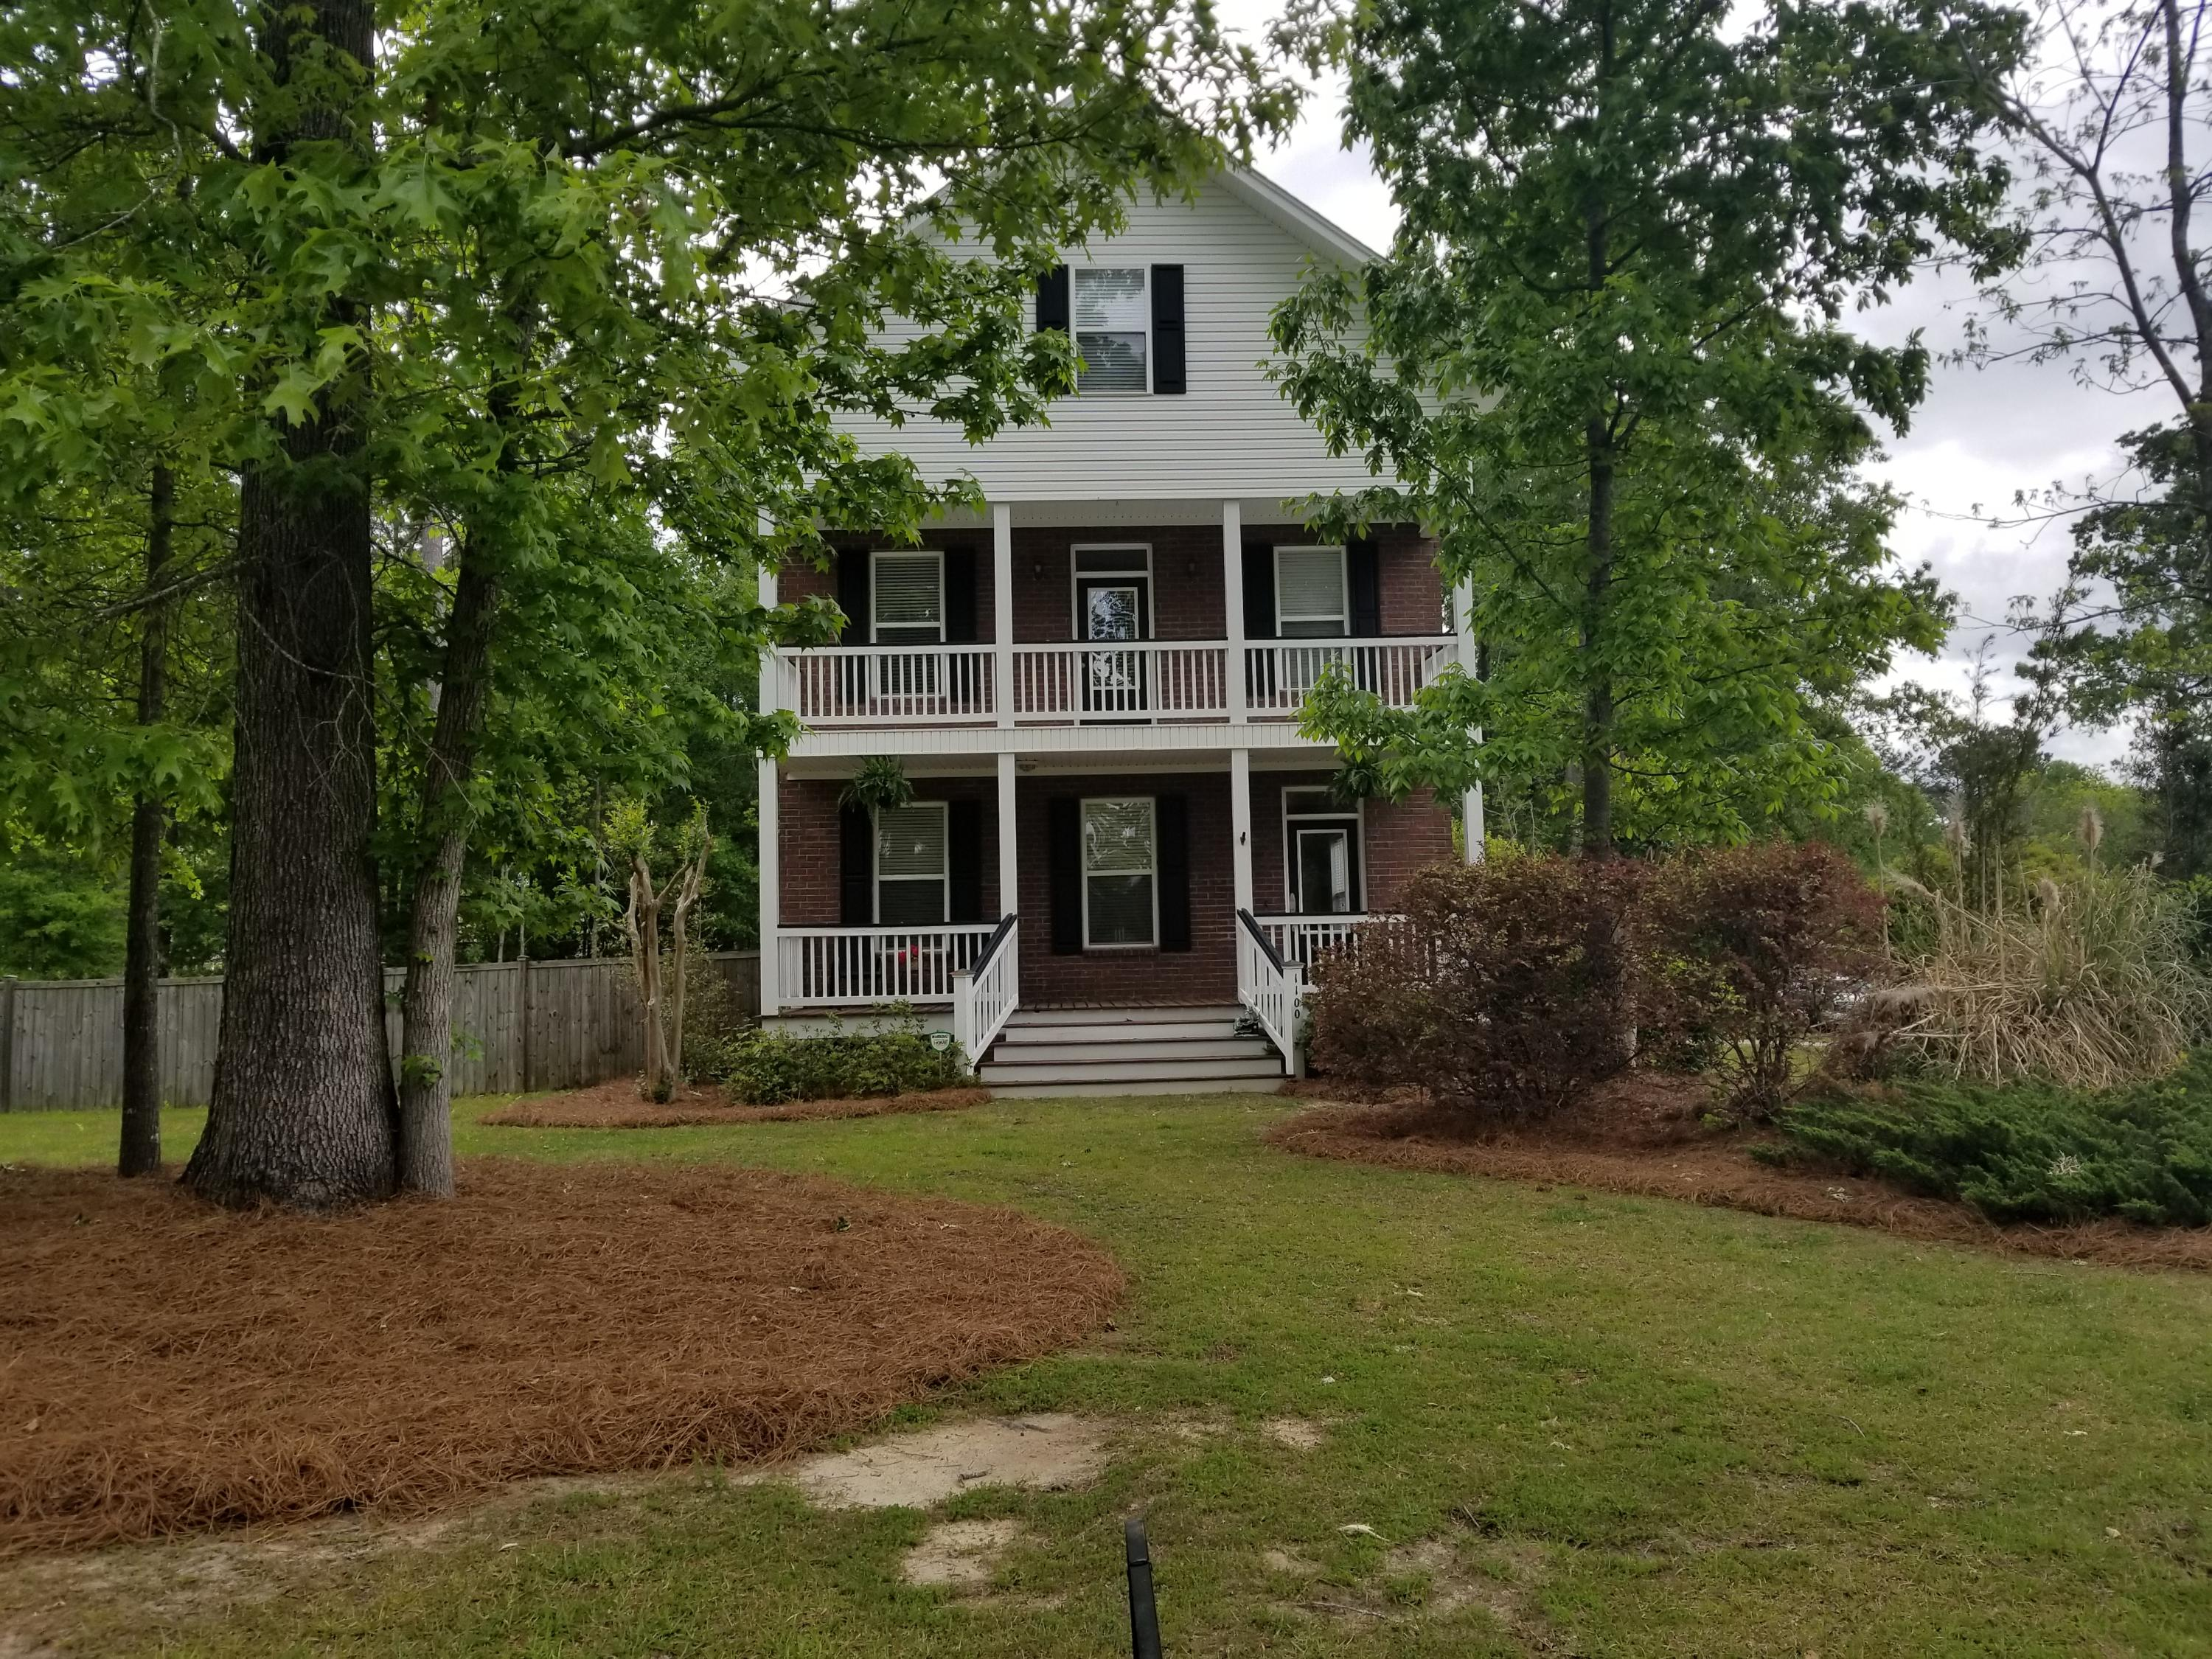 Photo of 1100 Bruton Blvd, Moncks Corner, SC 29461